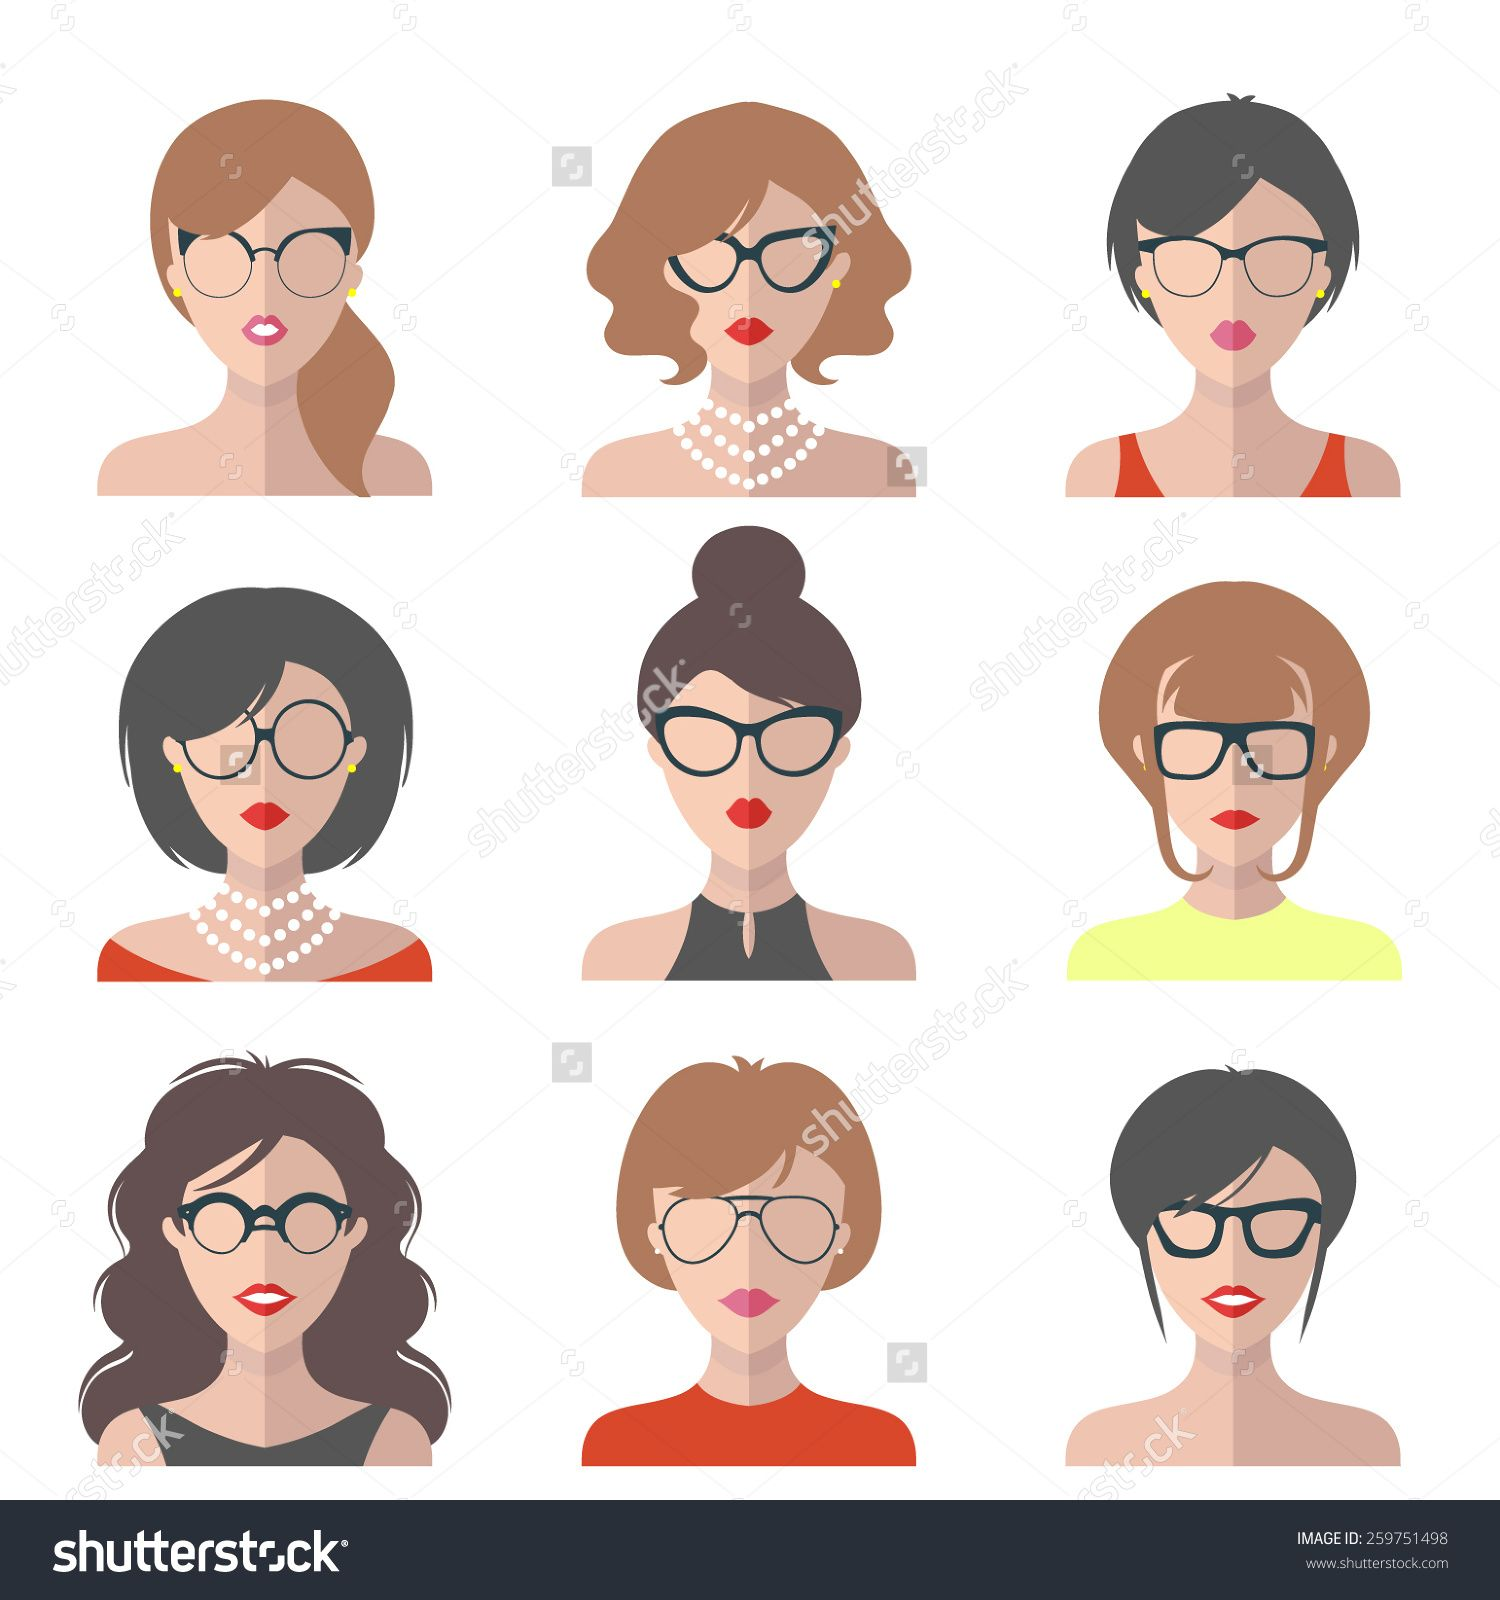 Big vector set of different women app icons in glasses in